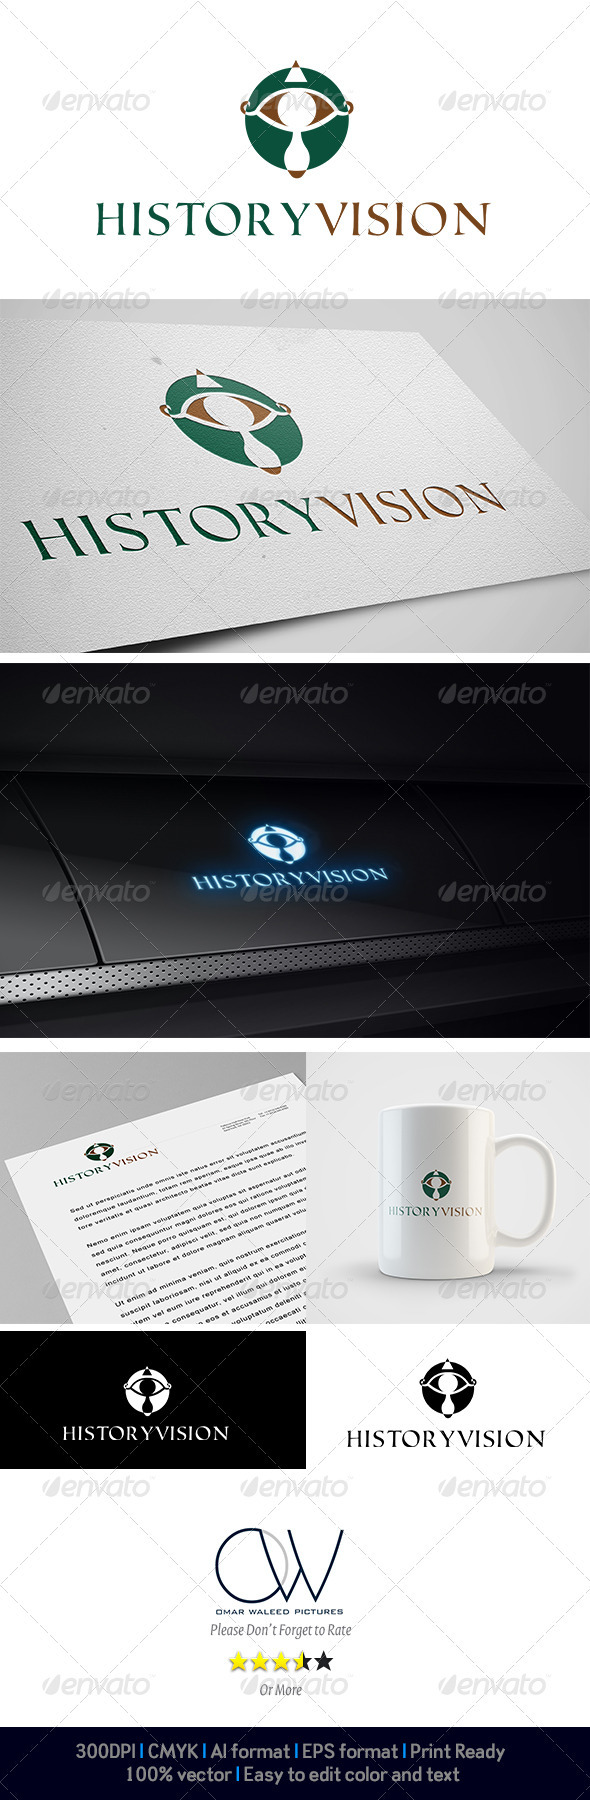 History Vision Logo - Abstract Logo Templates